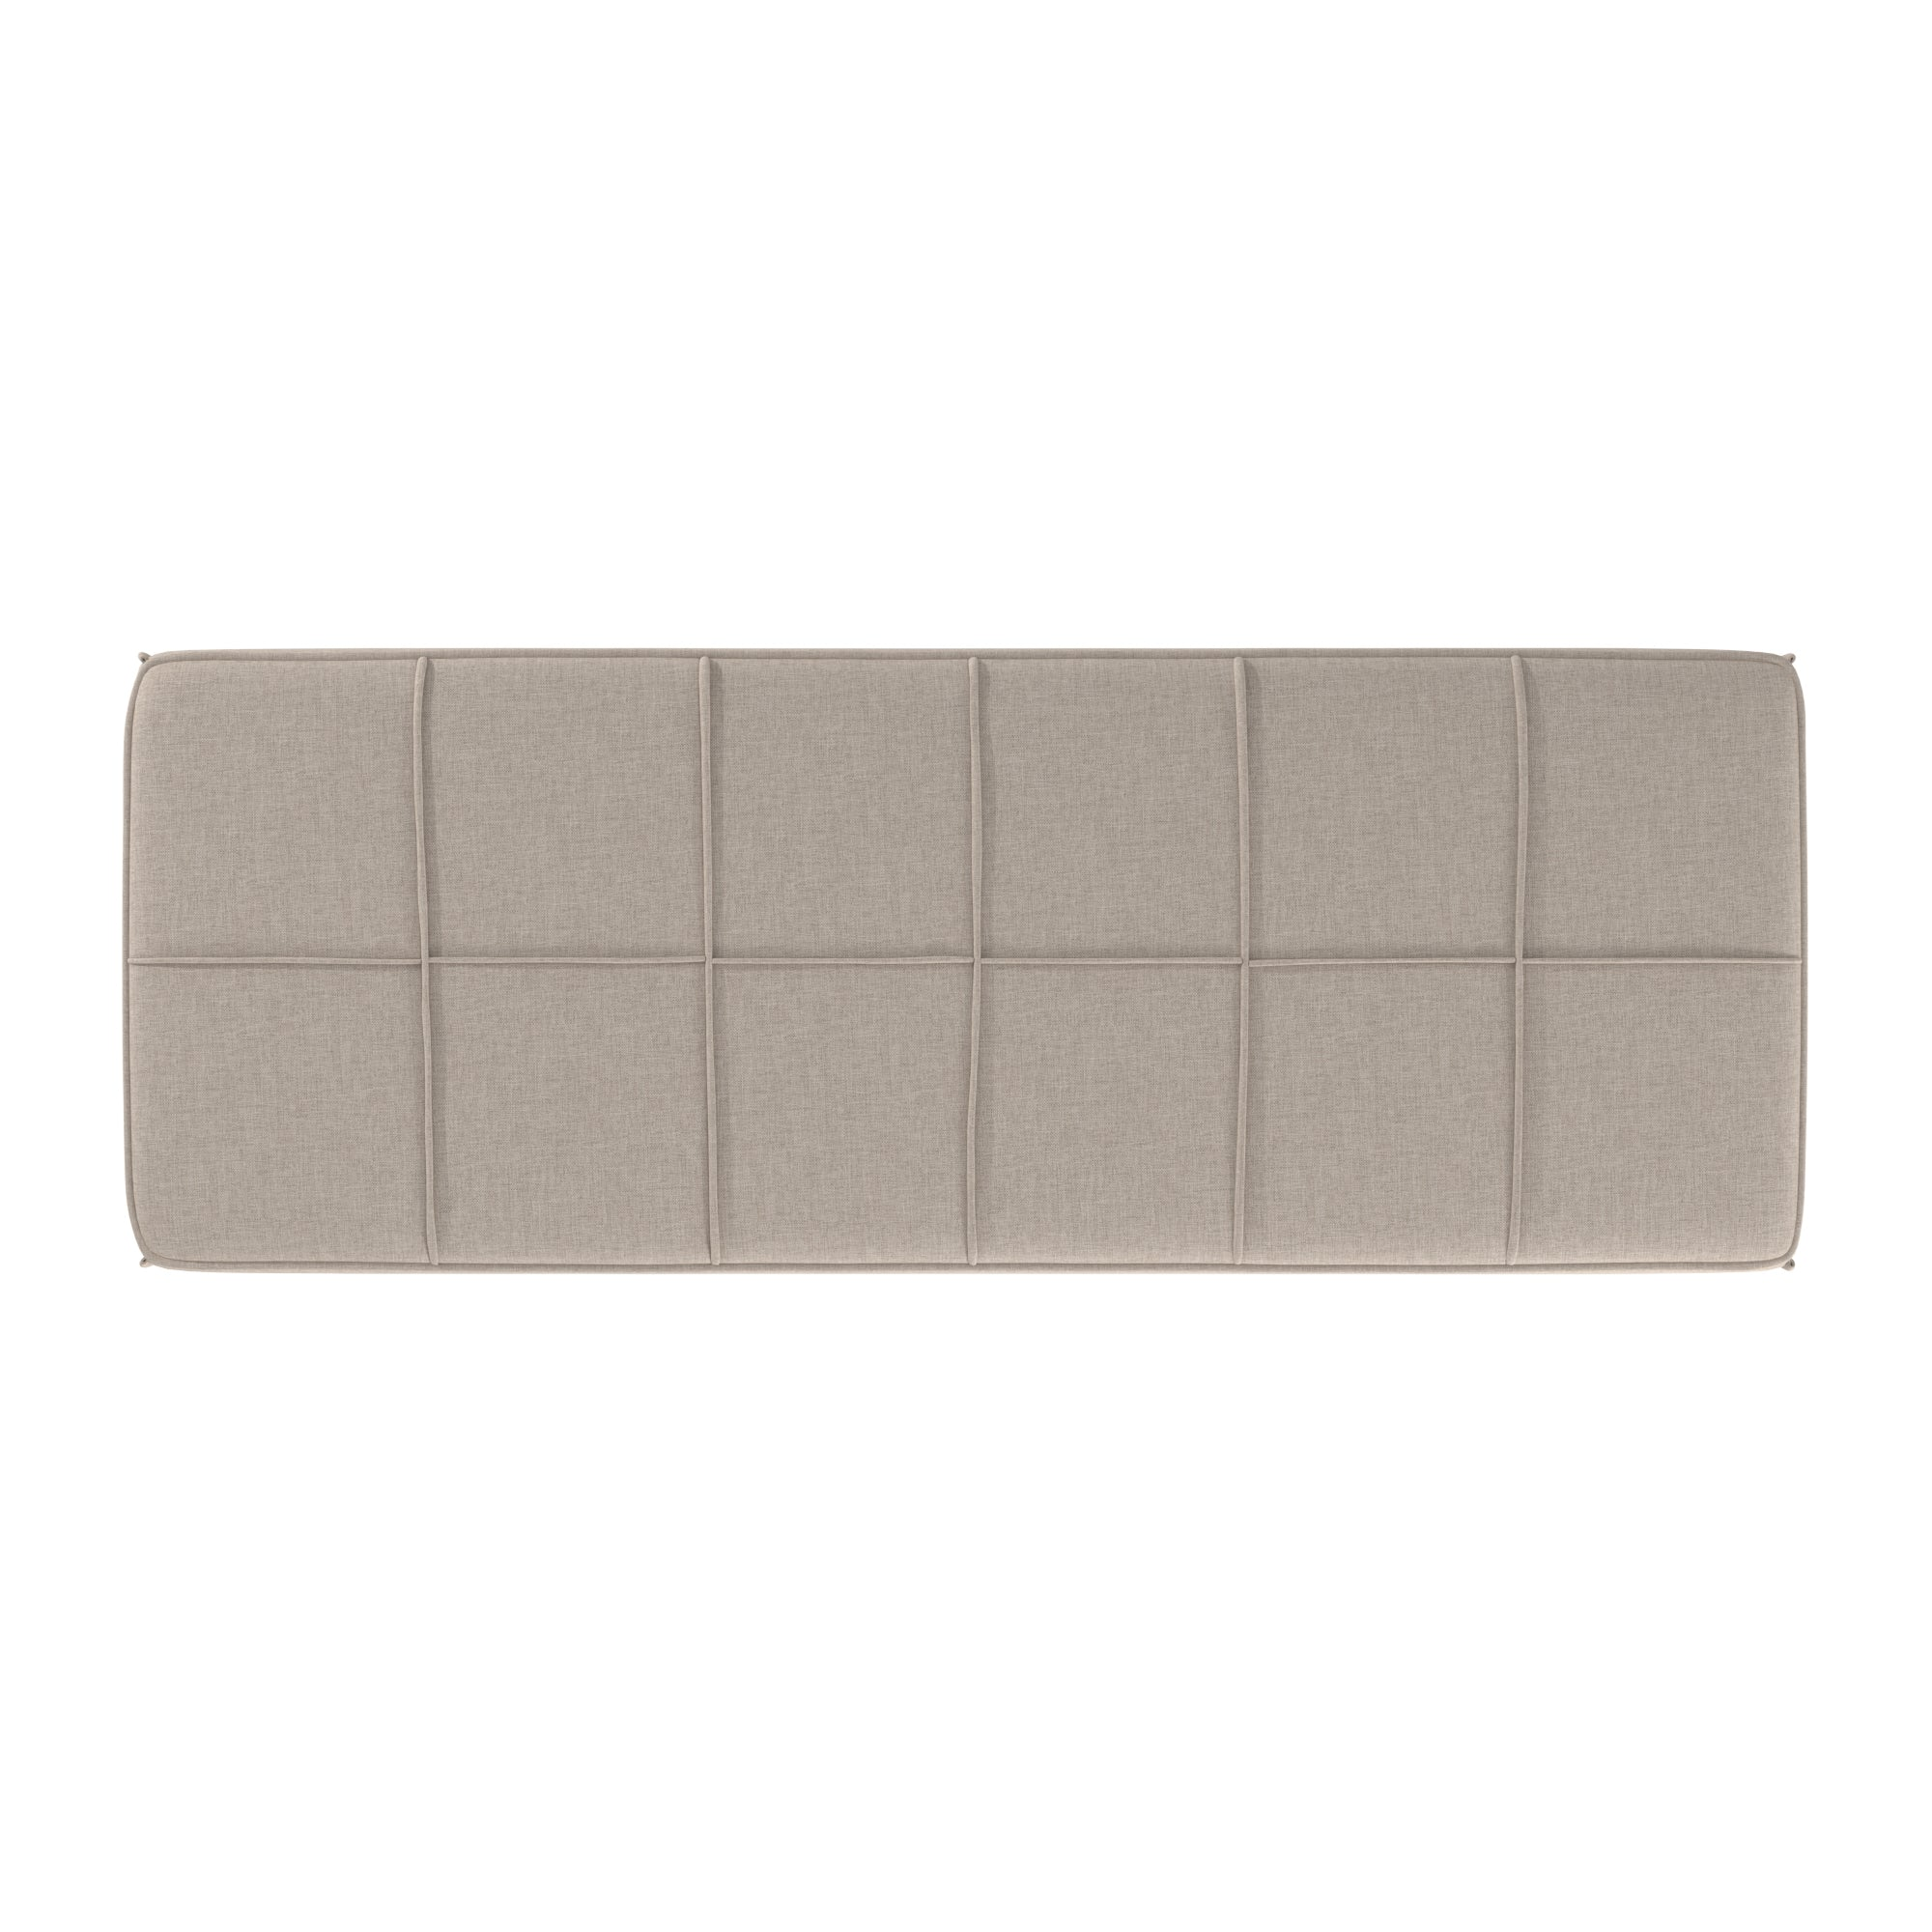 Black Finish Linen Upholstered Bench - Beige